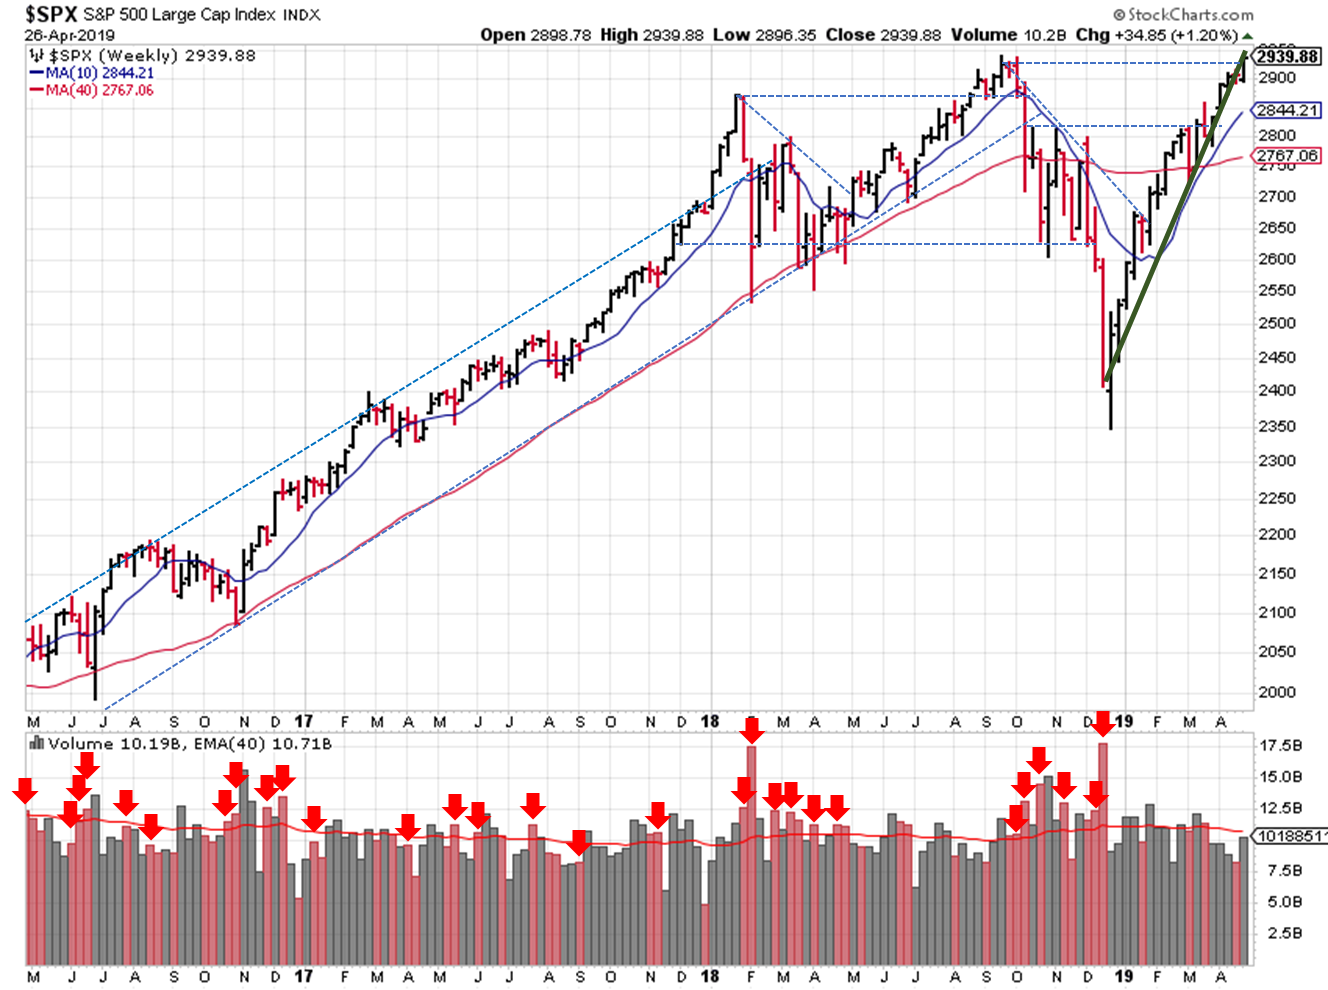 Trendlines for weekly SPX prices